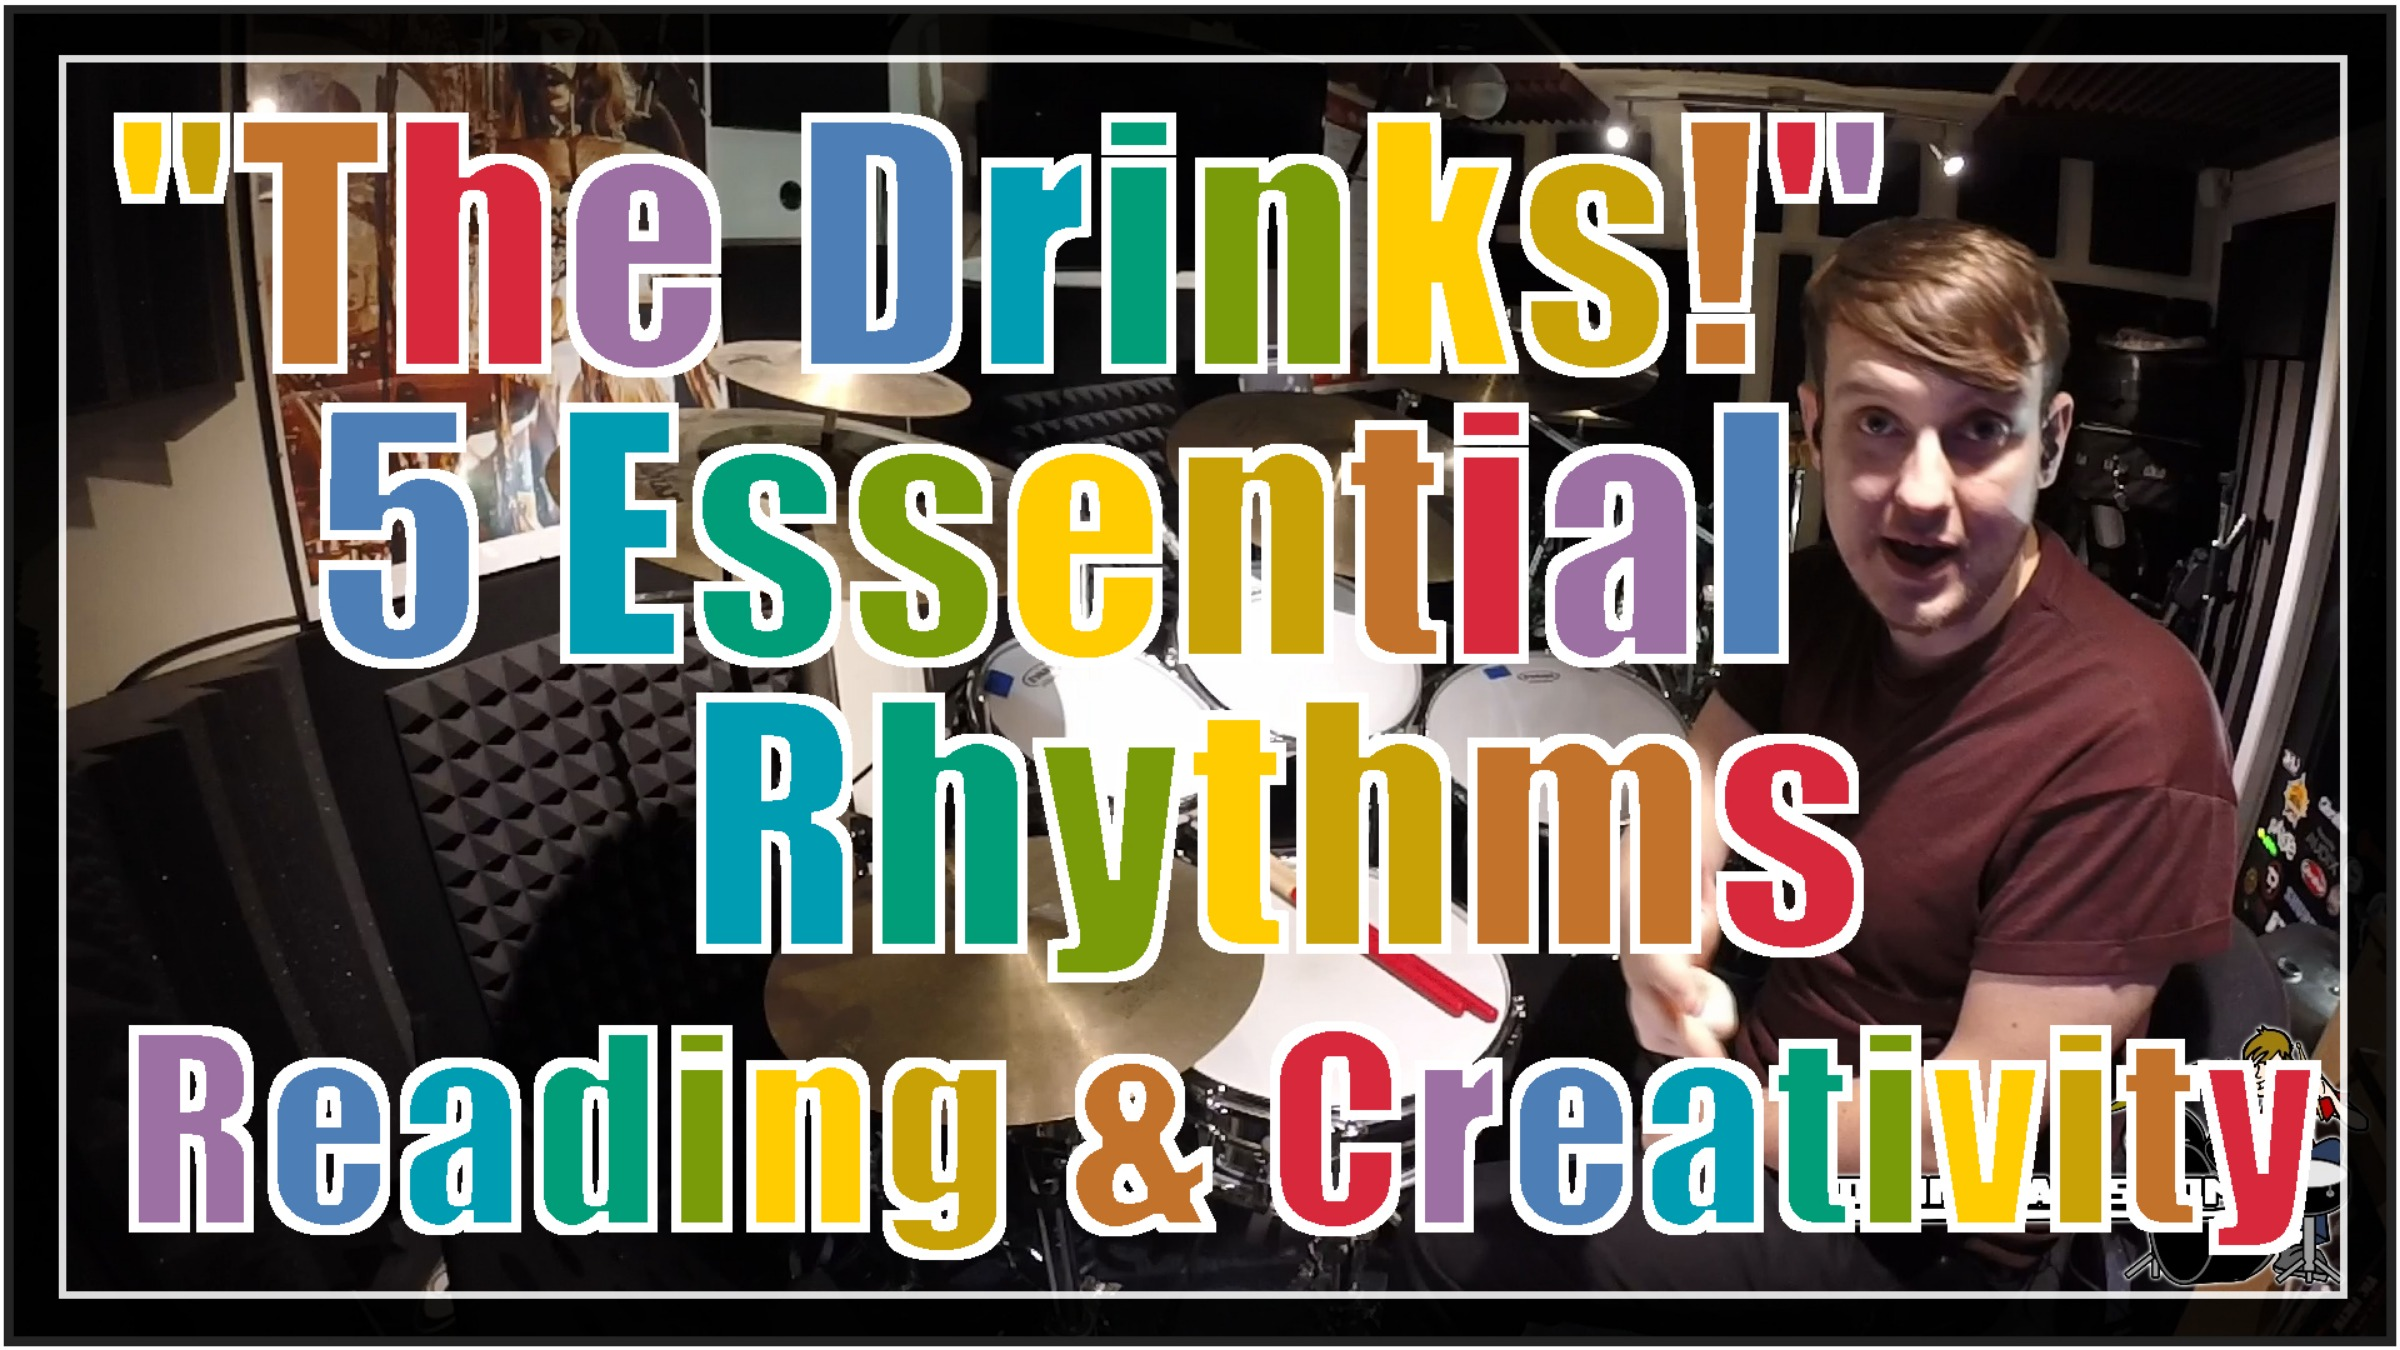 The Drinks - A Guide to 5 Essential Rhythms